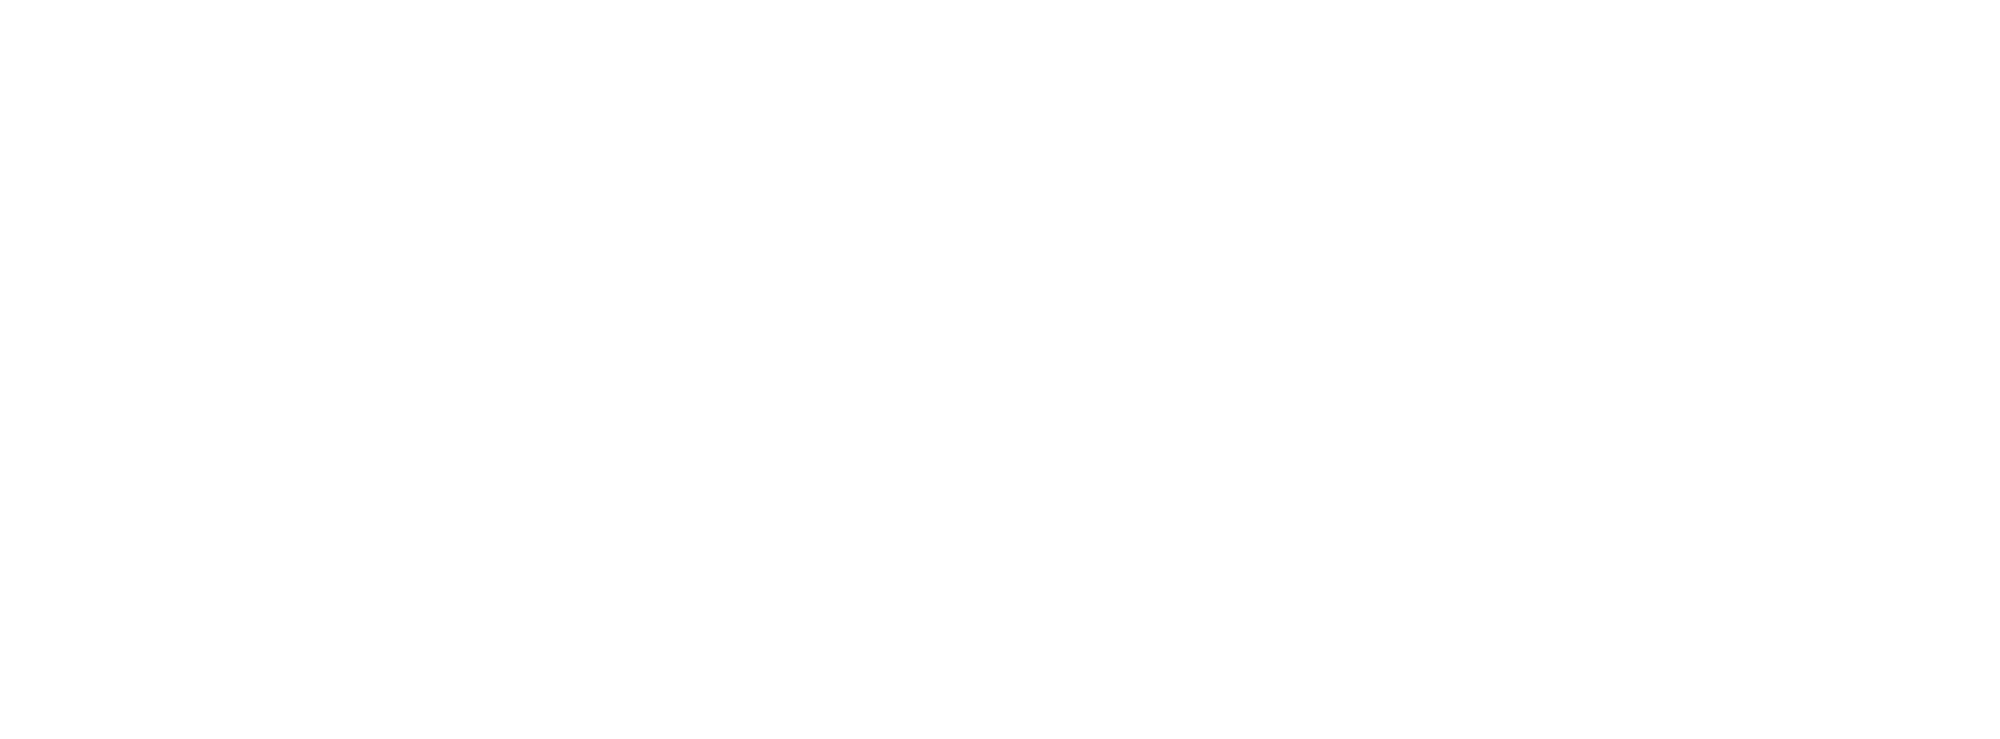 journey-with-us-2